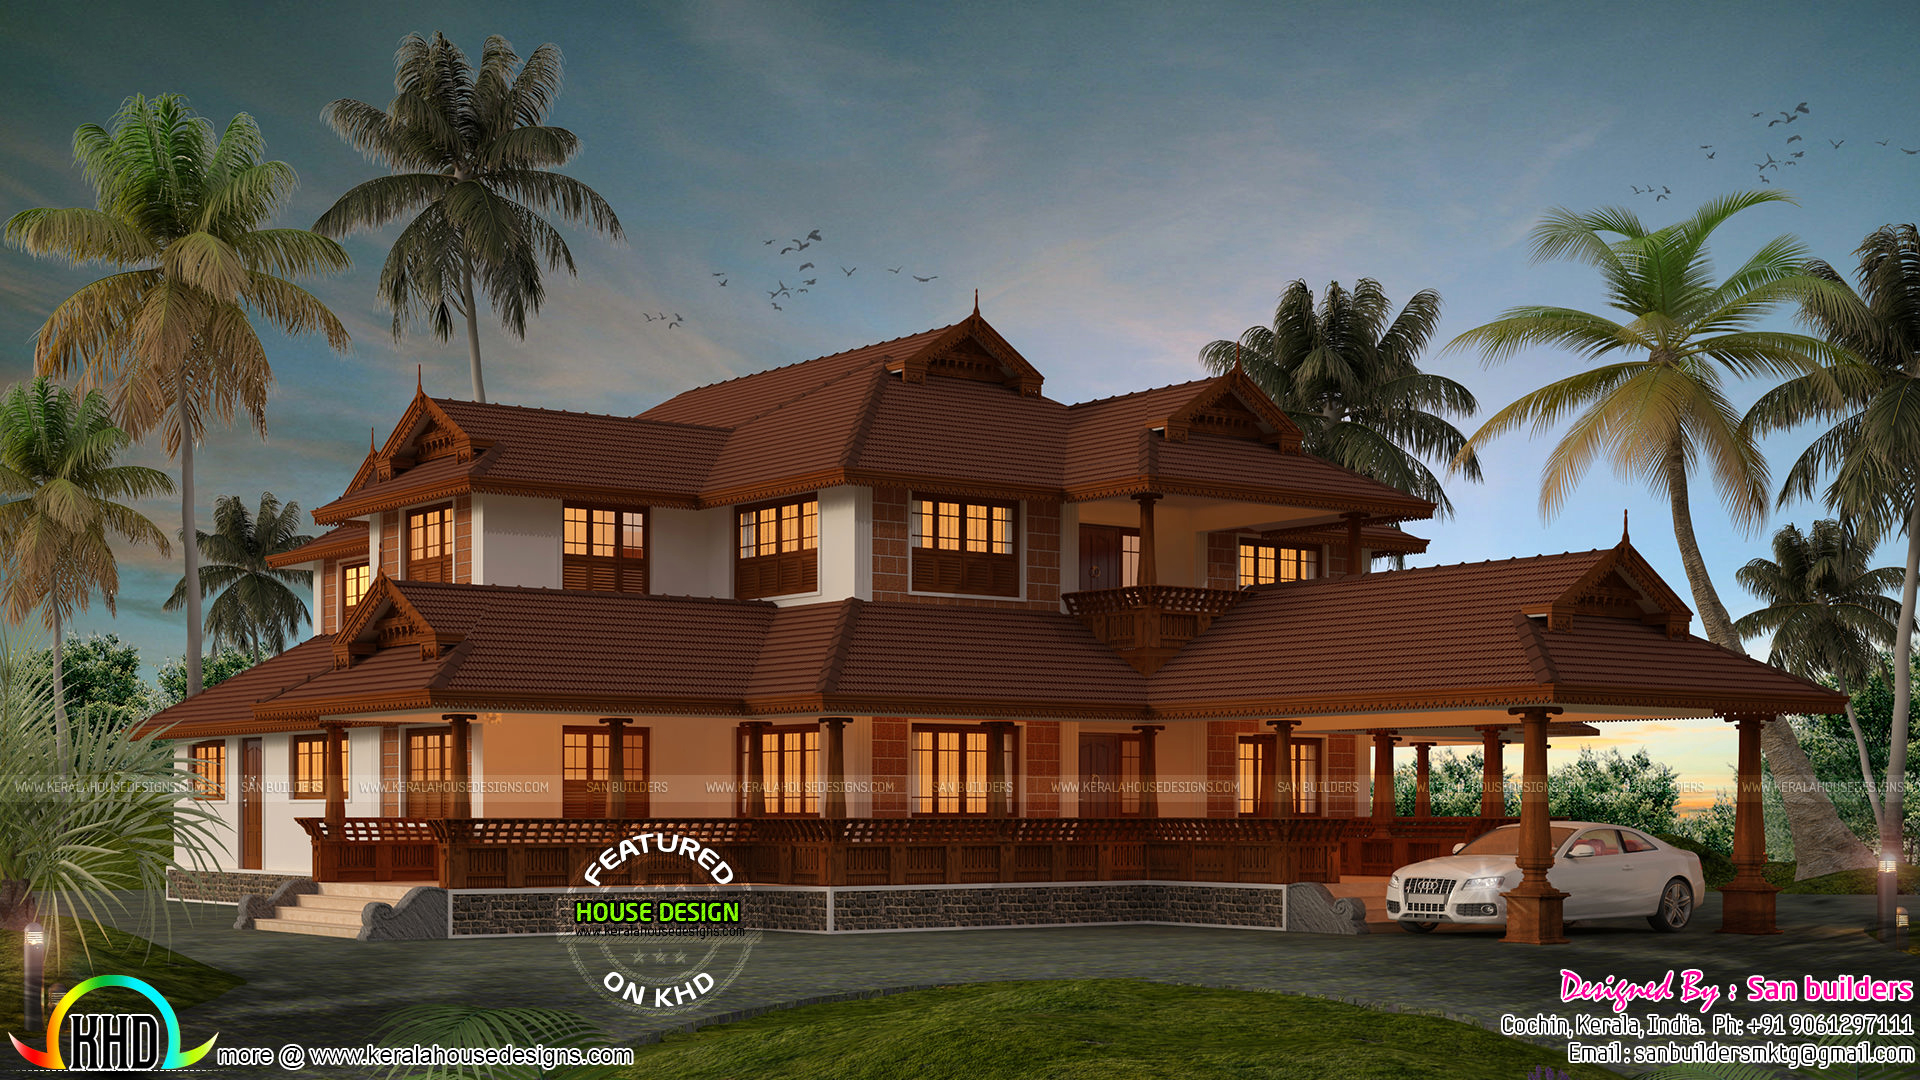 Beautiful Kerala Traditional House Plans With Photos Fresh Stylish Ideas with regard to Kerala Traditional House Plans With Photos